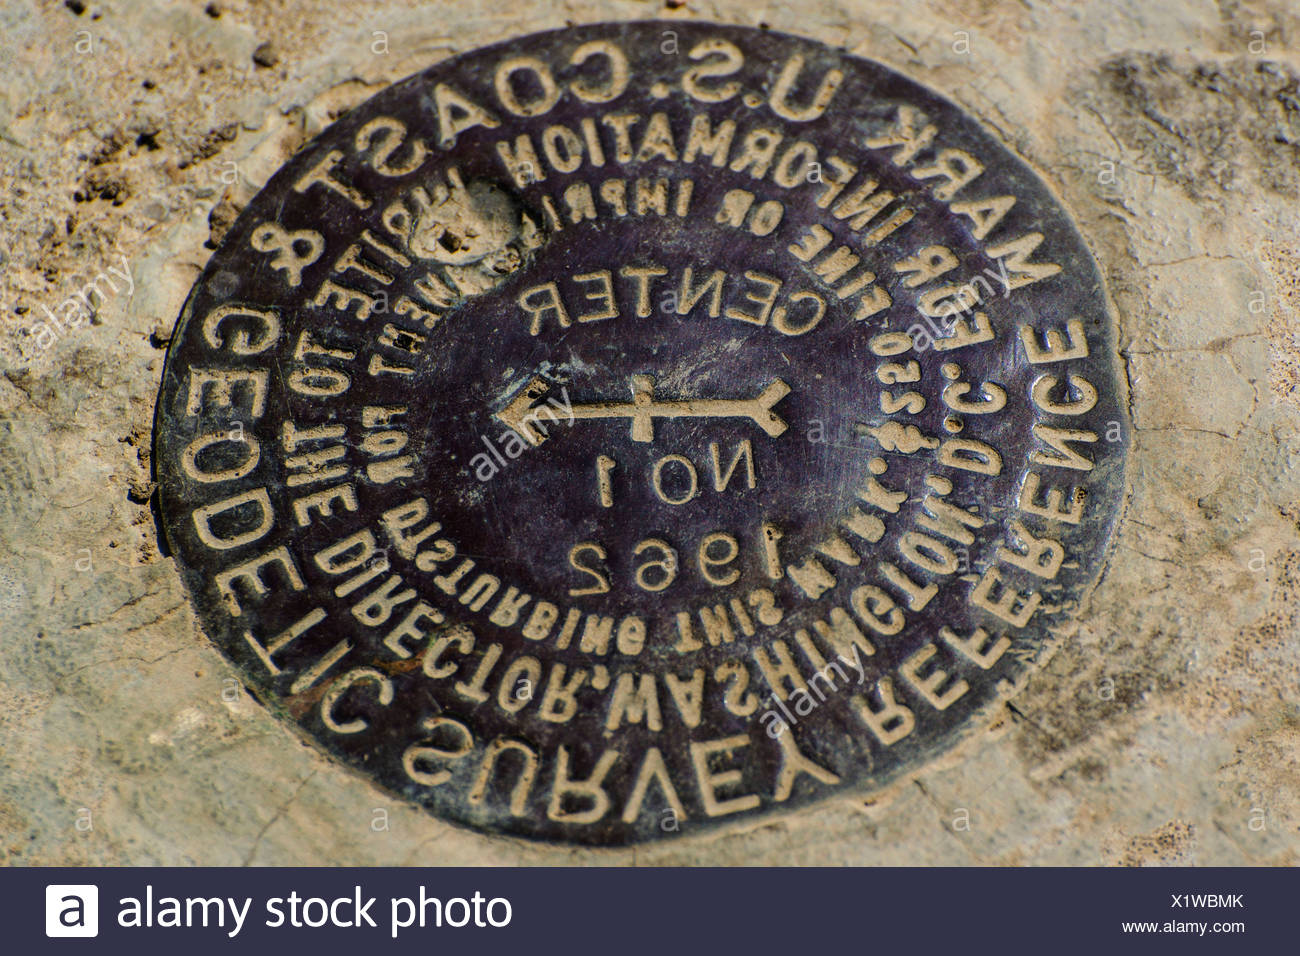 Actual, geographic, center, middle, South Dakota, USA, United States, America, marker - Stock Image